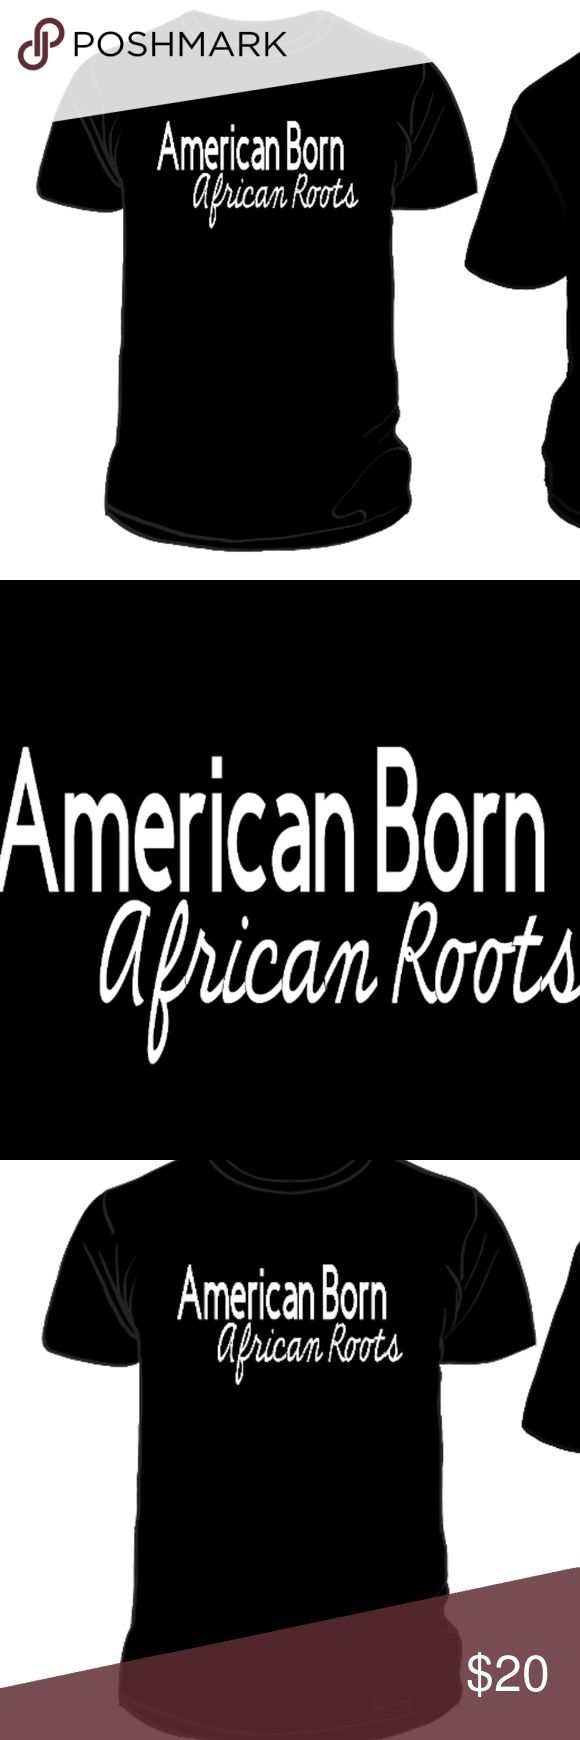 African Roots Reflective T-Shirt Every powerhouse needs a strong foundation. Be proud of your roots, and where you came from. American Born, African Roots.  VISIBL creates unique, state of the art apparel designs.  - This design meets ANSI 107 and EN471 standards for retro-reflectivity, meaning the design reflects light back to the light source.  - The design can be seen from be seen from over ¼ mile away (1,280 feet).   In other words, it is really, really extremely reflective! VISIBL Tops…